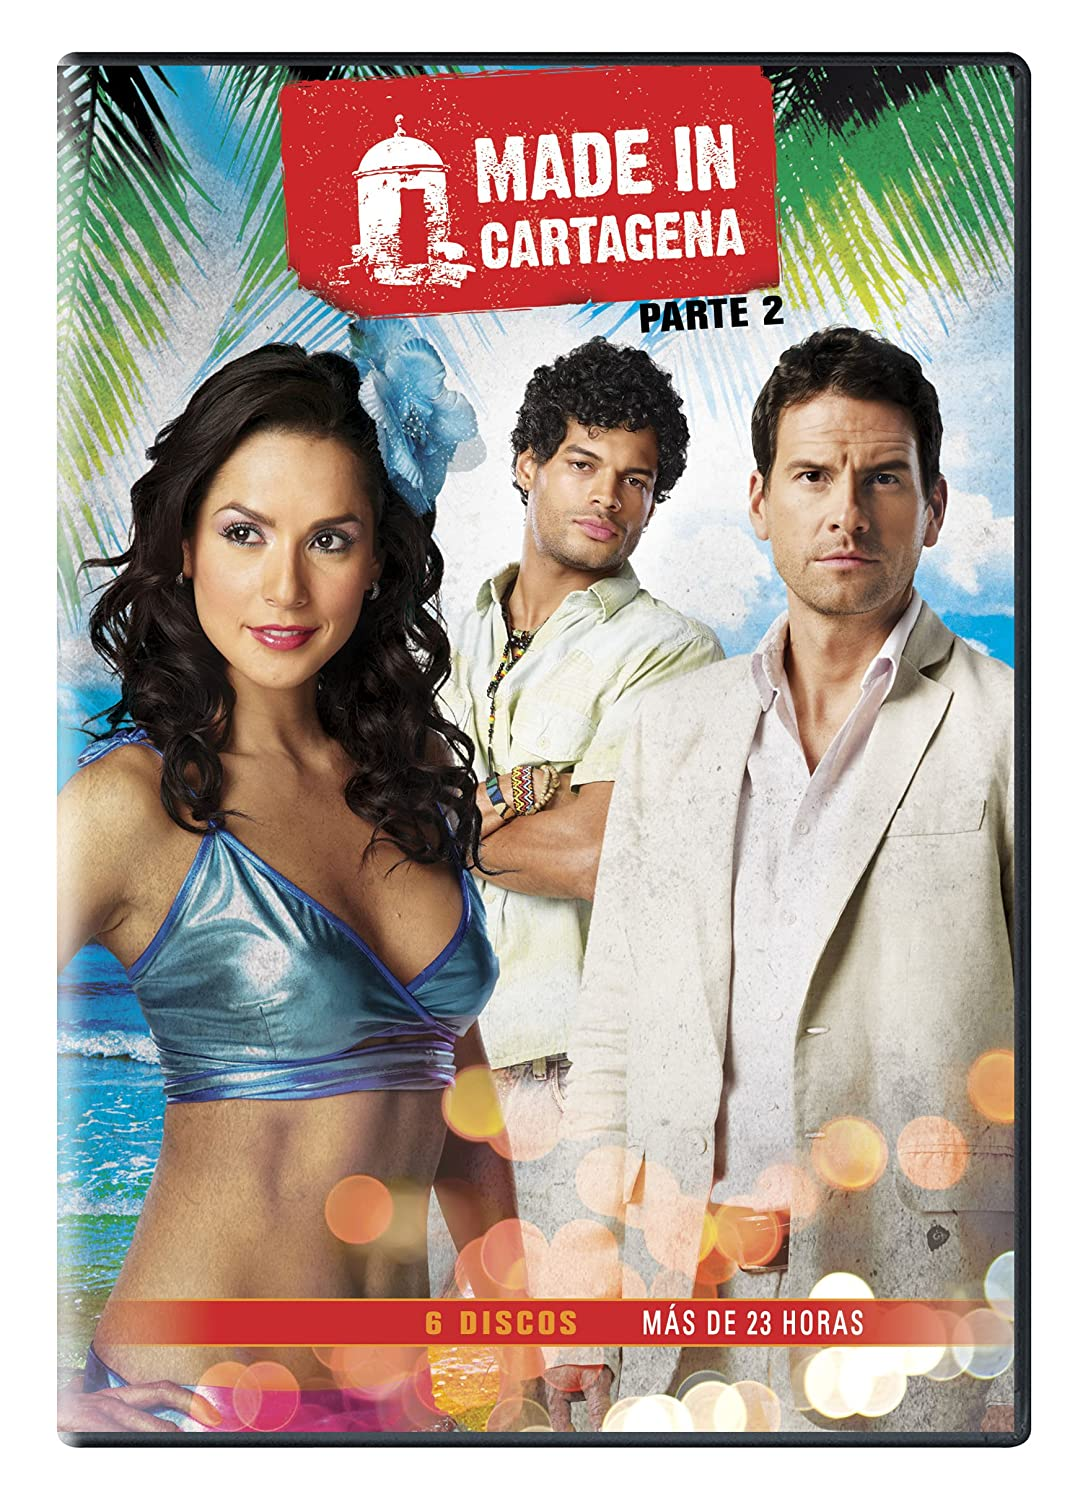 Download carmen villalobos wallpapers to your cell phone carmen - Amazon Com Made In Cartagena Parte 2 Carmen Villalobos Miguel De Miguel Fernando Solorzano None Movies Tv